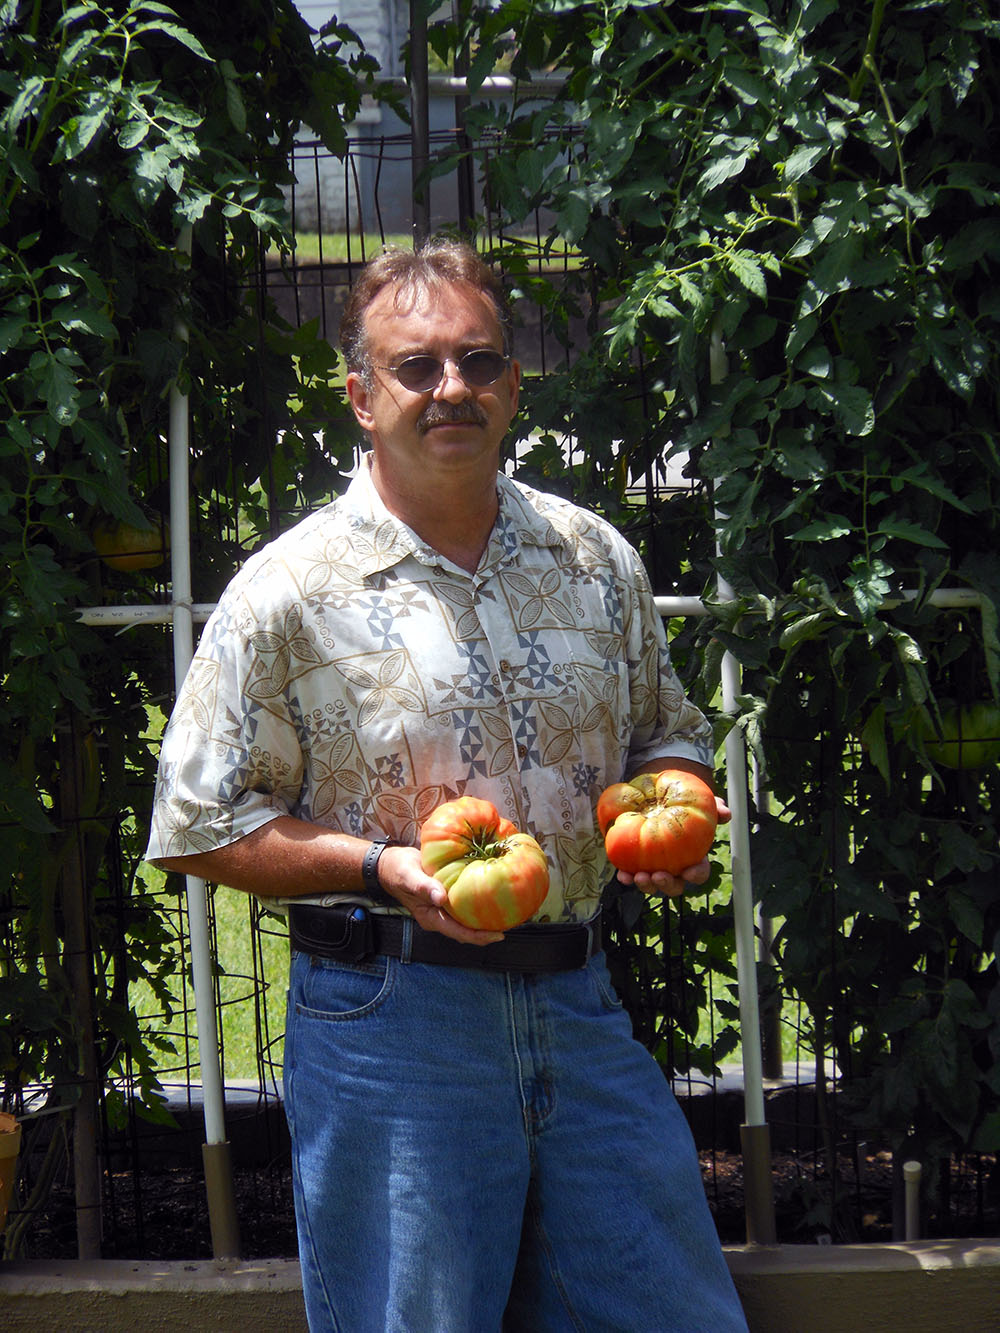 07-10-2015 Me and HUGE Tomatoes 02